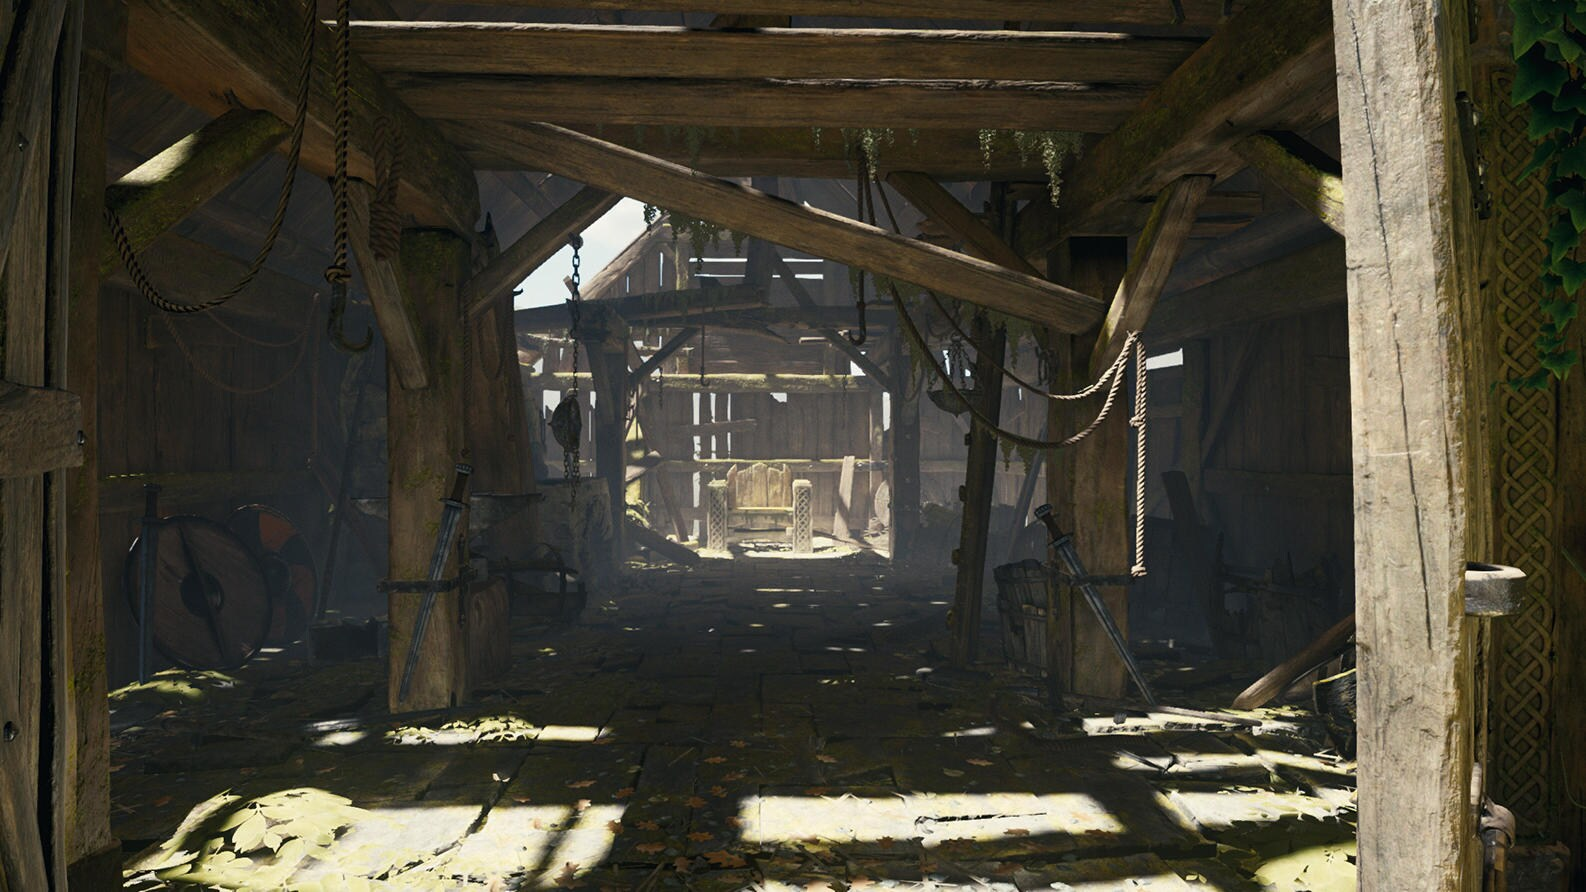 Game view of Smithy interior in 'The Blacksmith - Environments' package